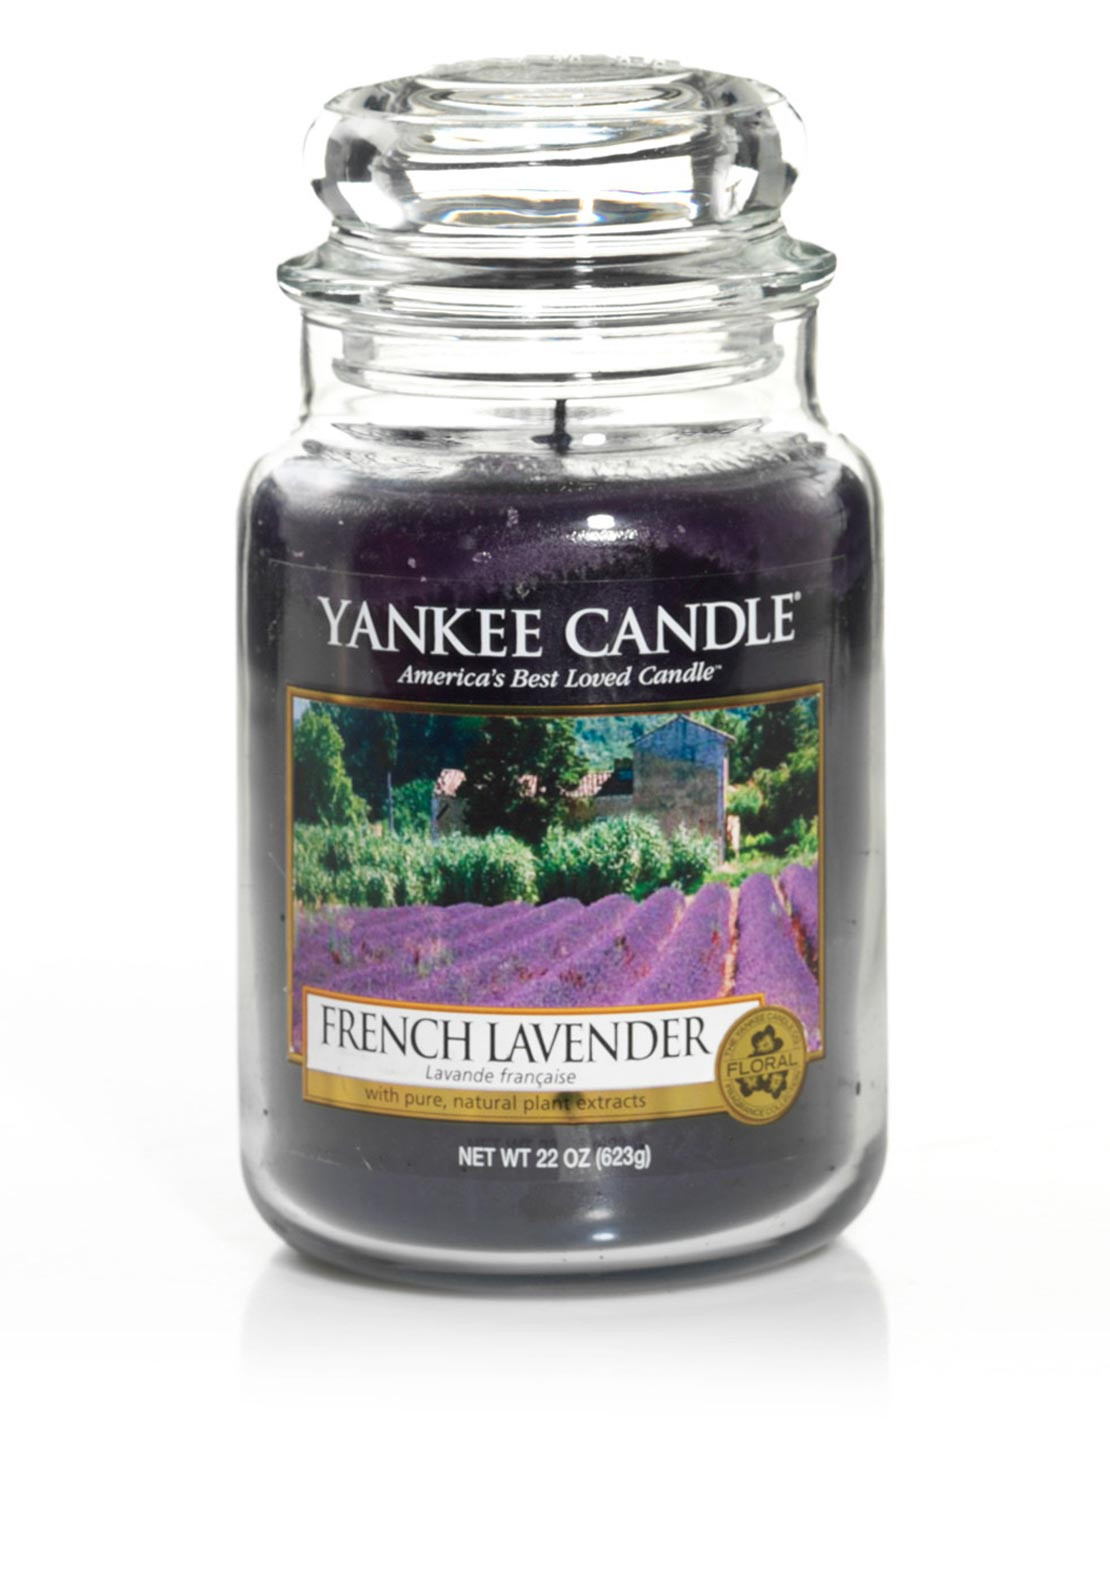 Yankee Candle Large Classic Jar, French Lavender